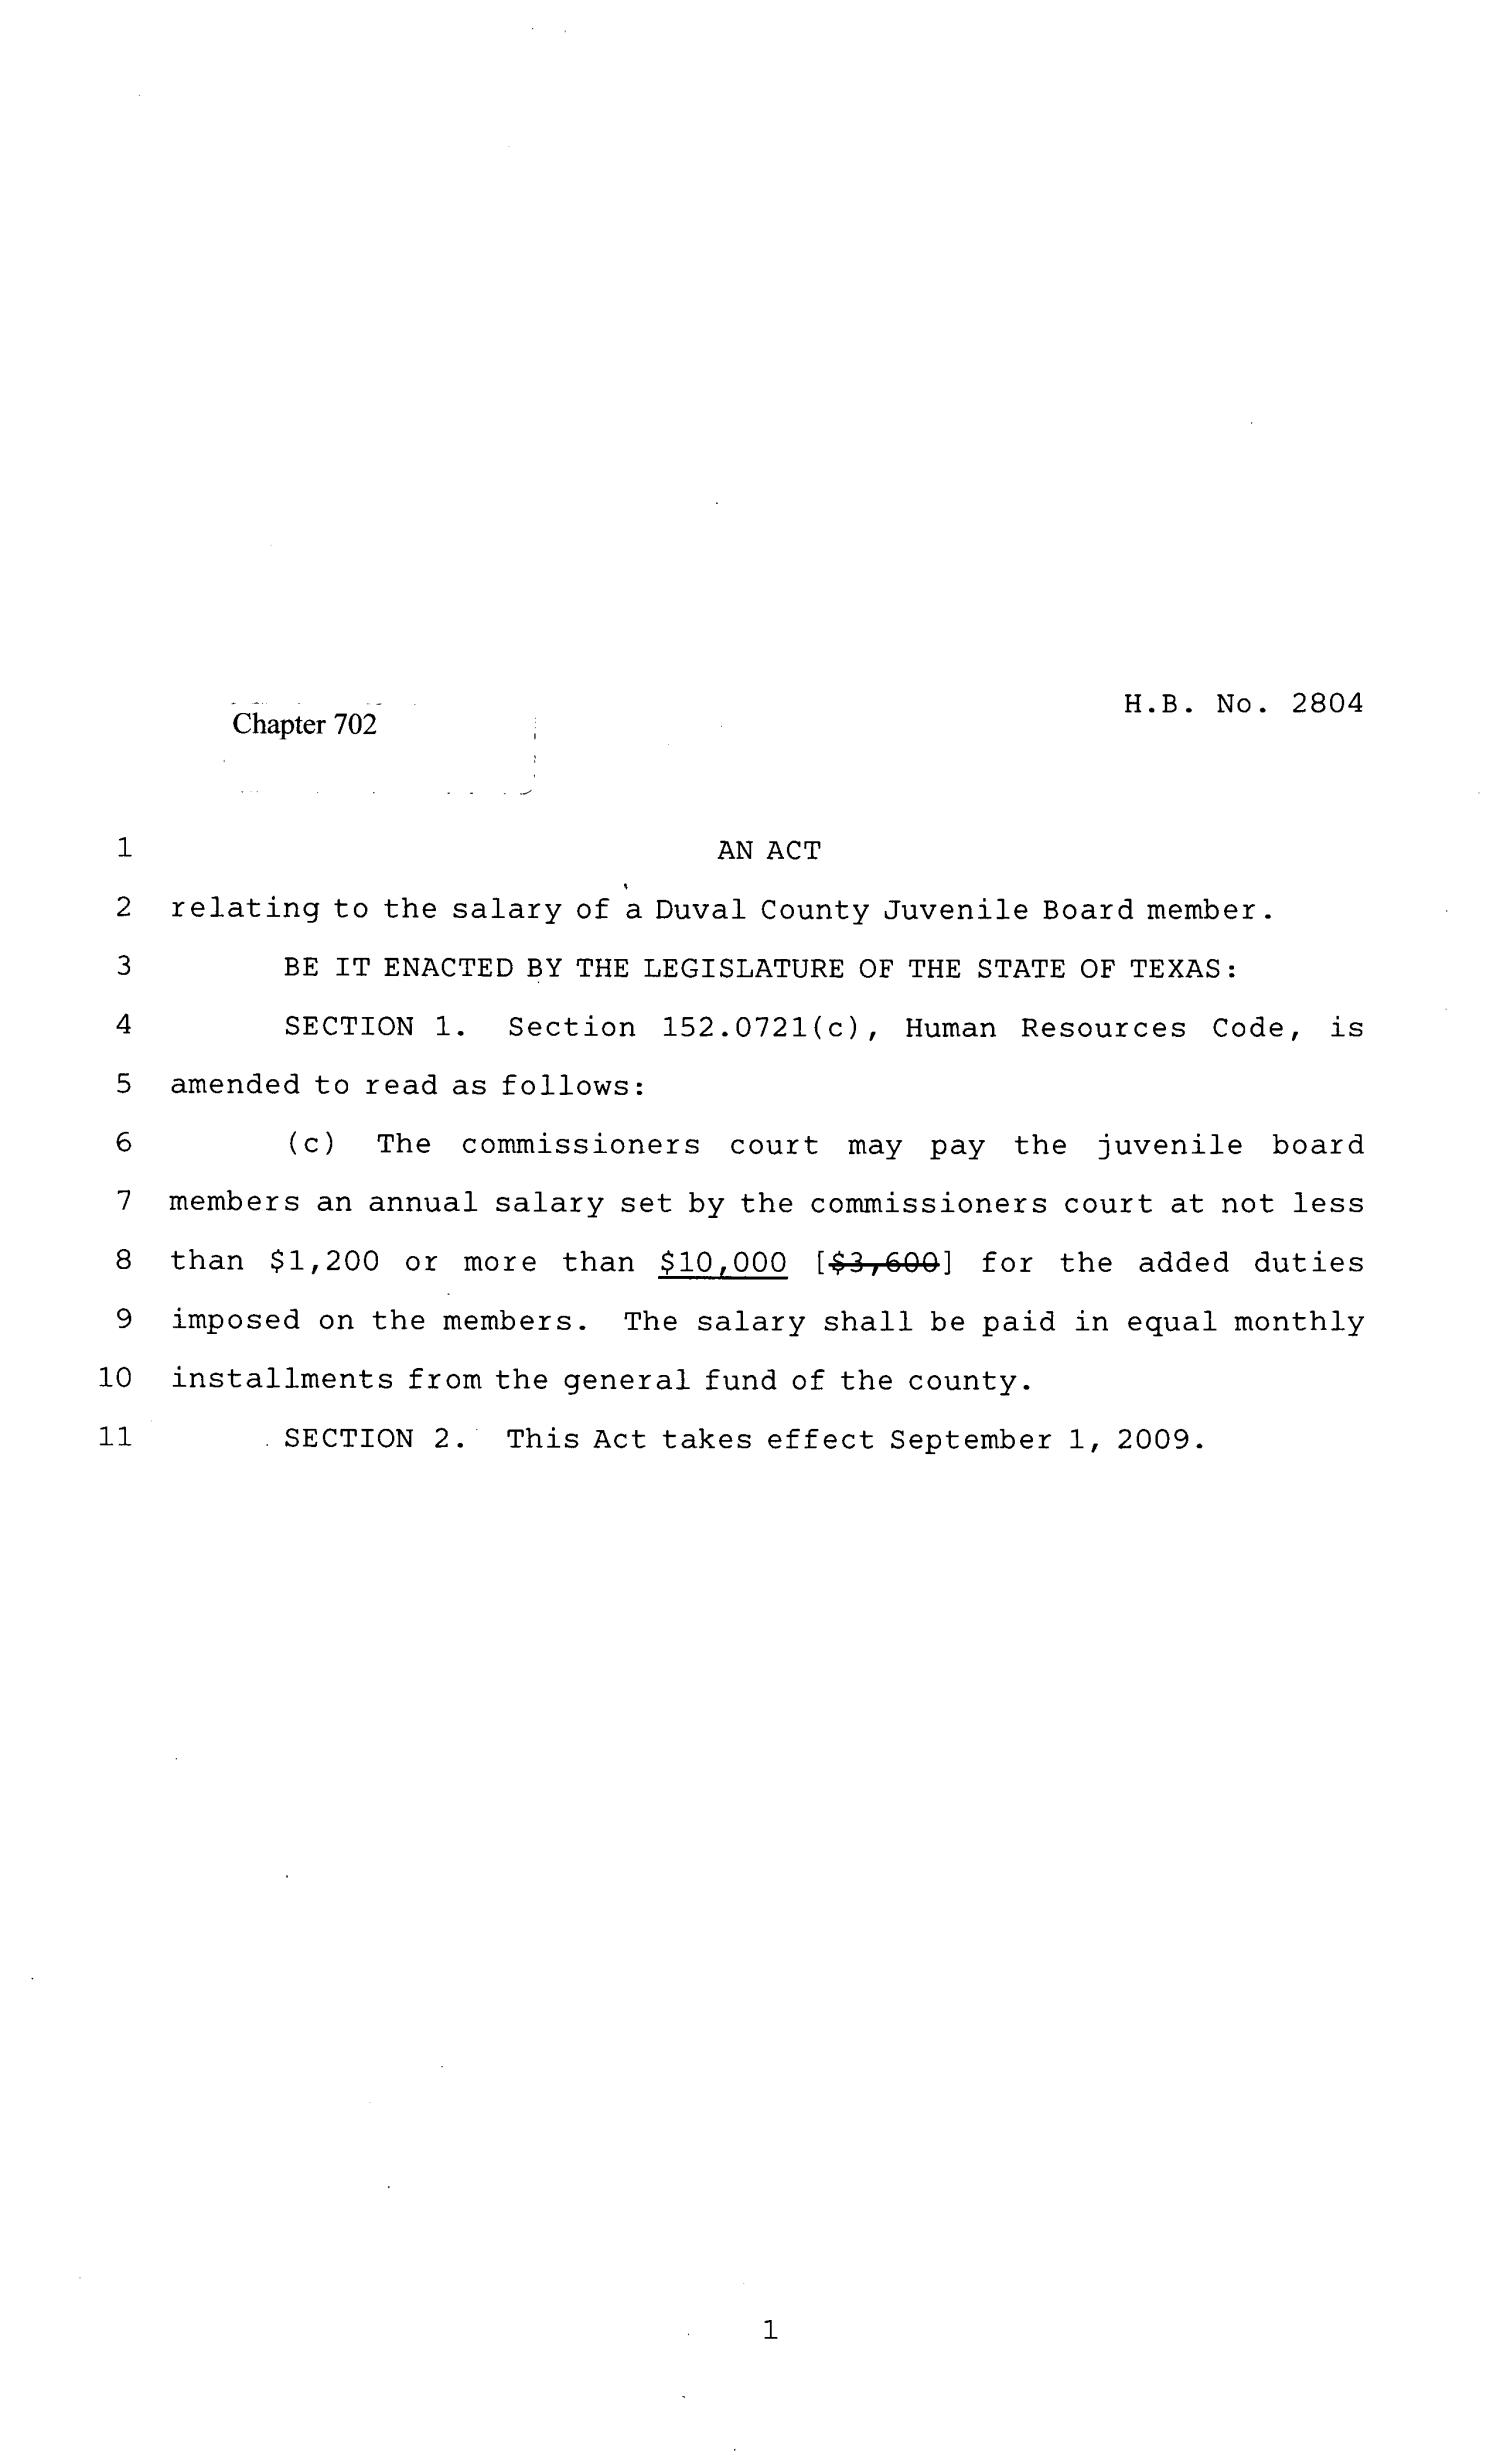 81st Texas Legislature, Regular Session, House Bill 2804, Chapter 702                                                                                                      [Sequence #]: 1 of 2